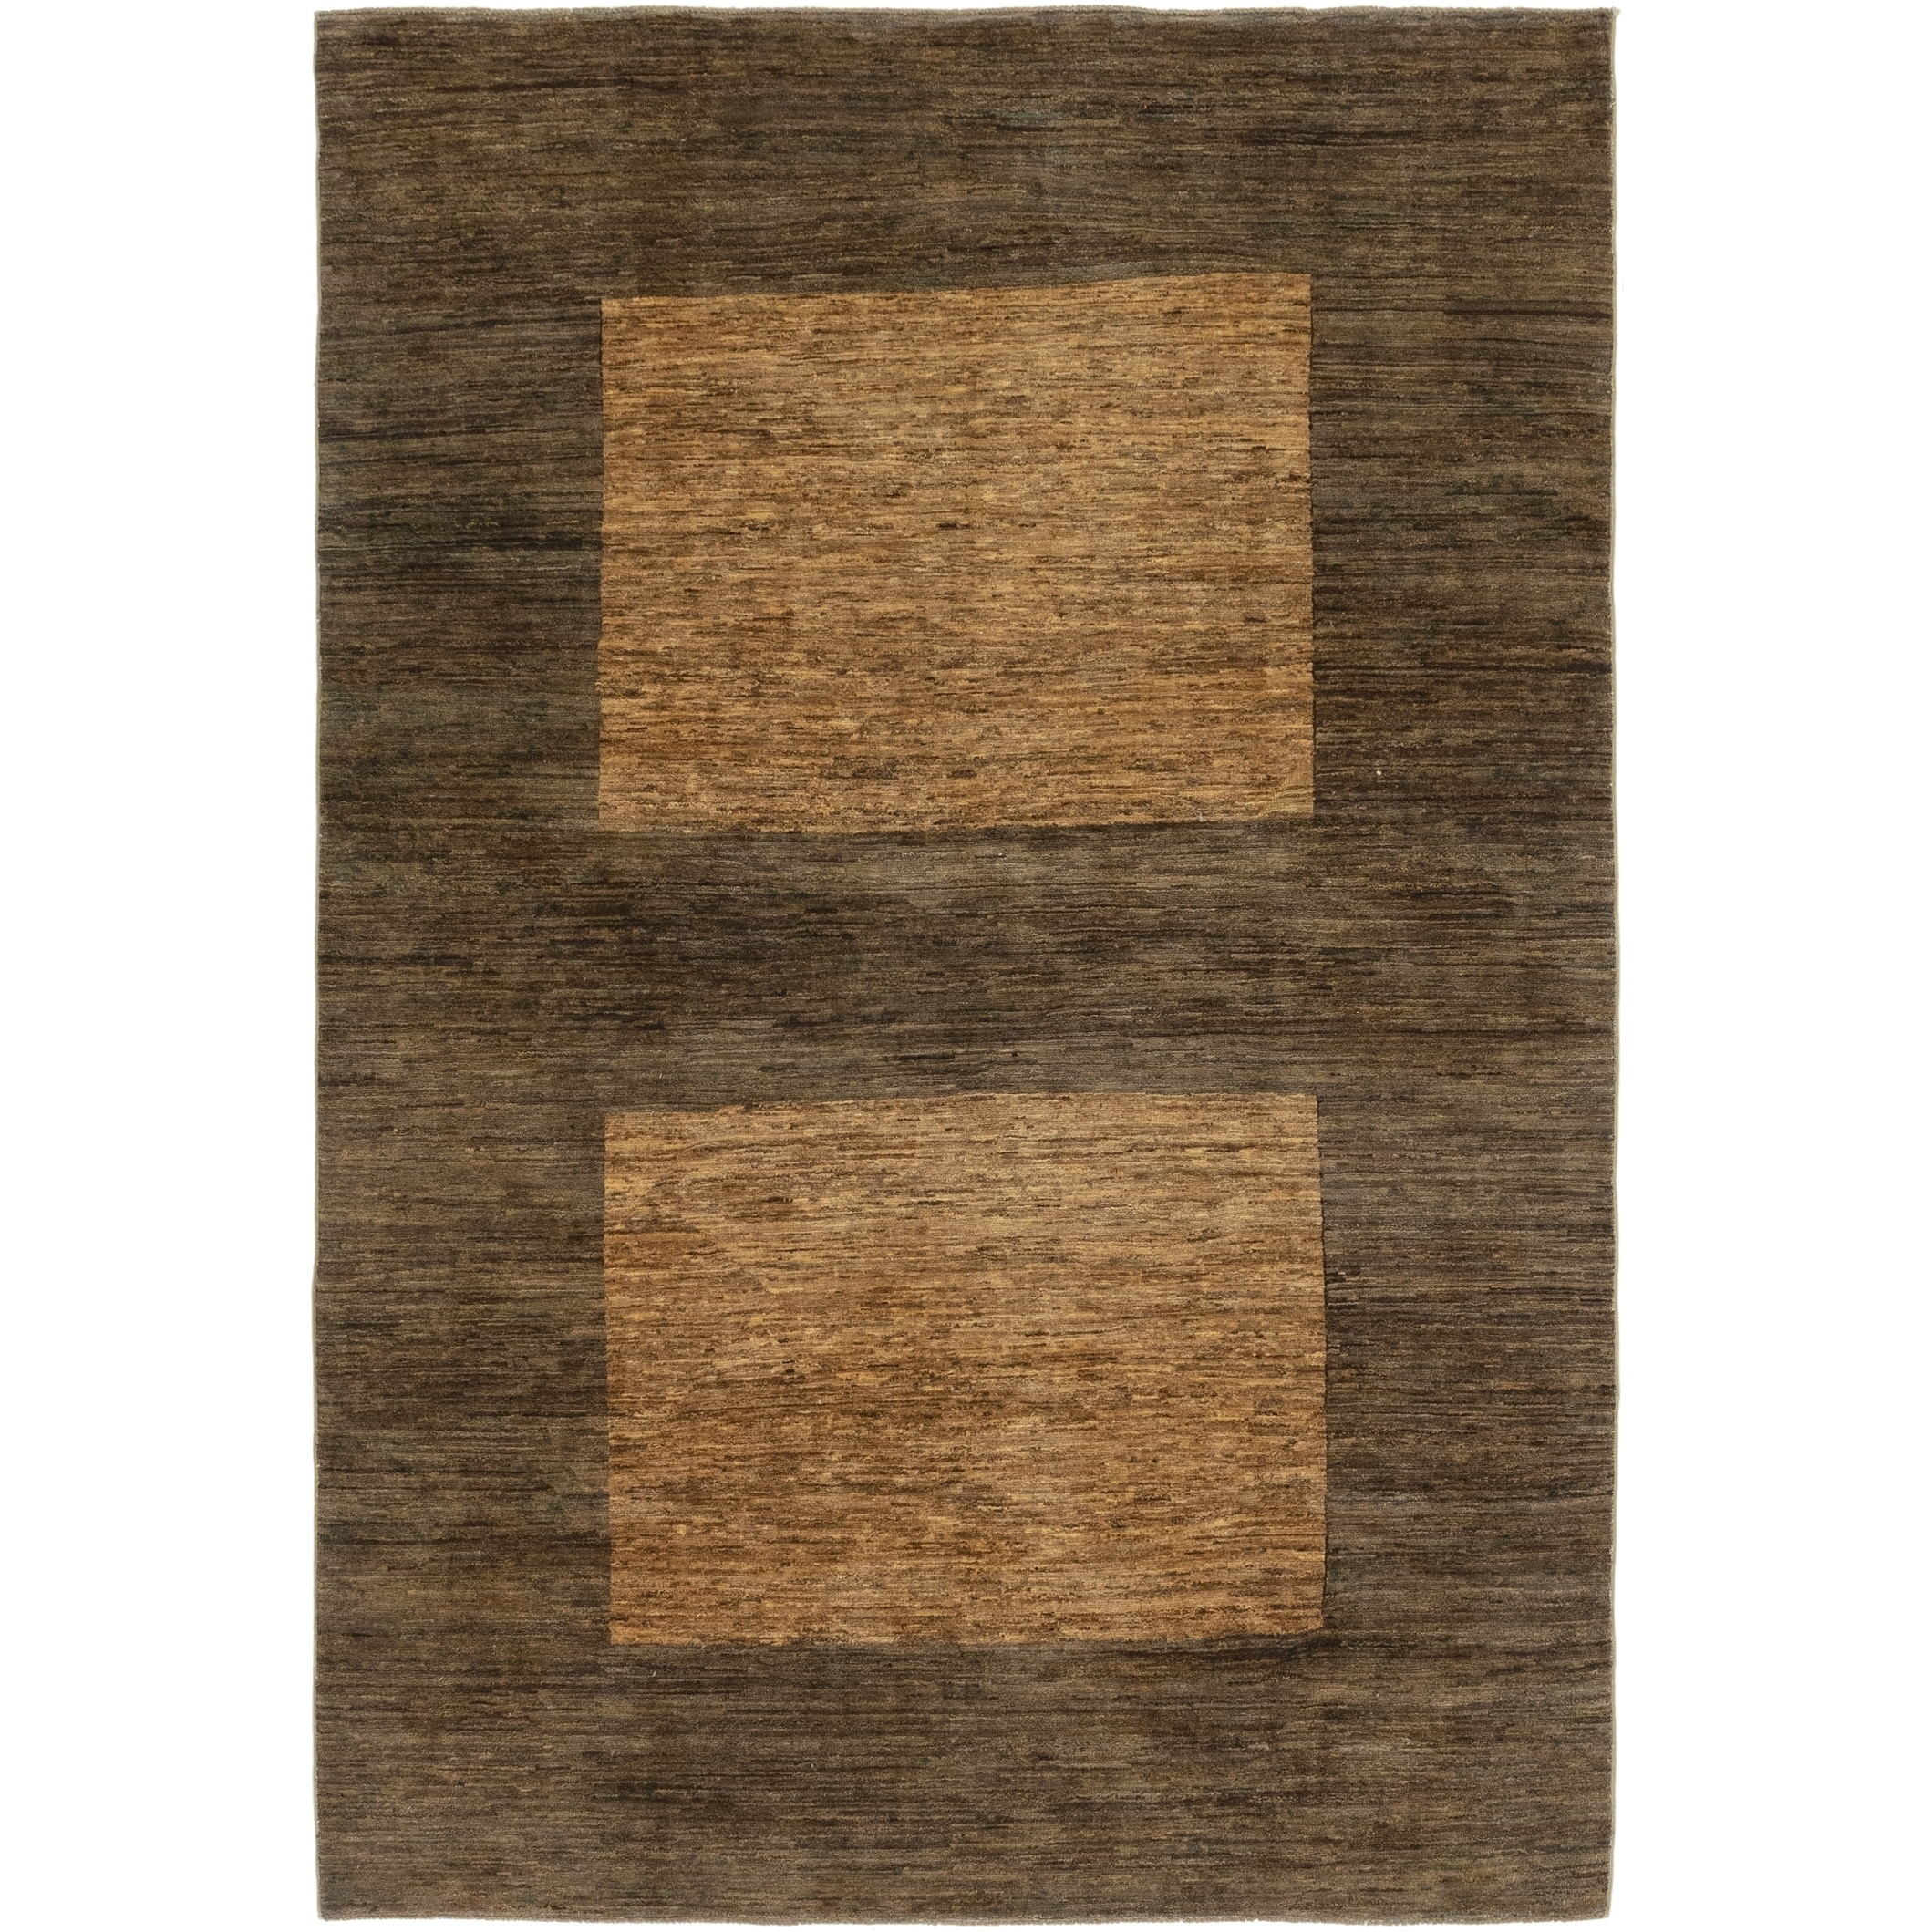 Hand Knotted Kashkuli Gabbeh Wool Area Rug - 6 x 9 3 (Brown - 6 x 9 3)